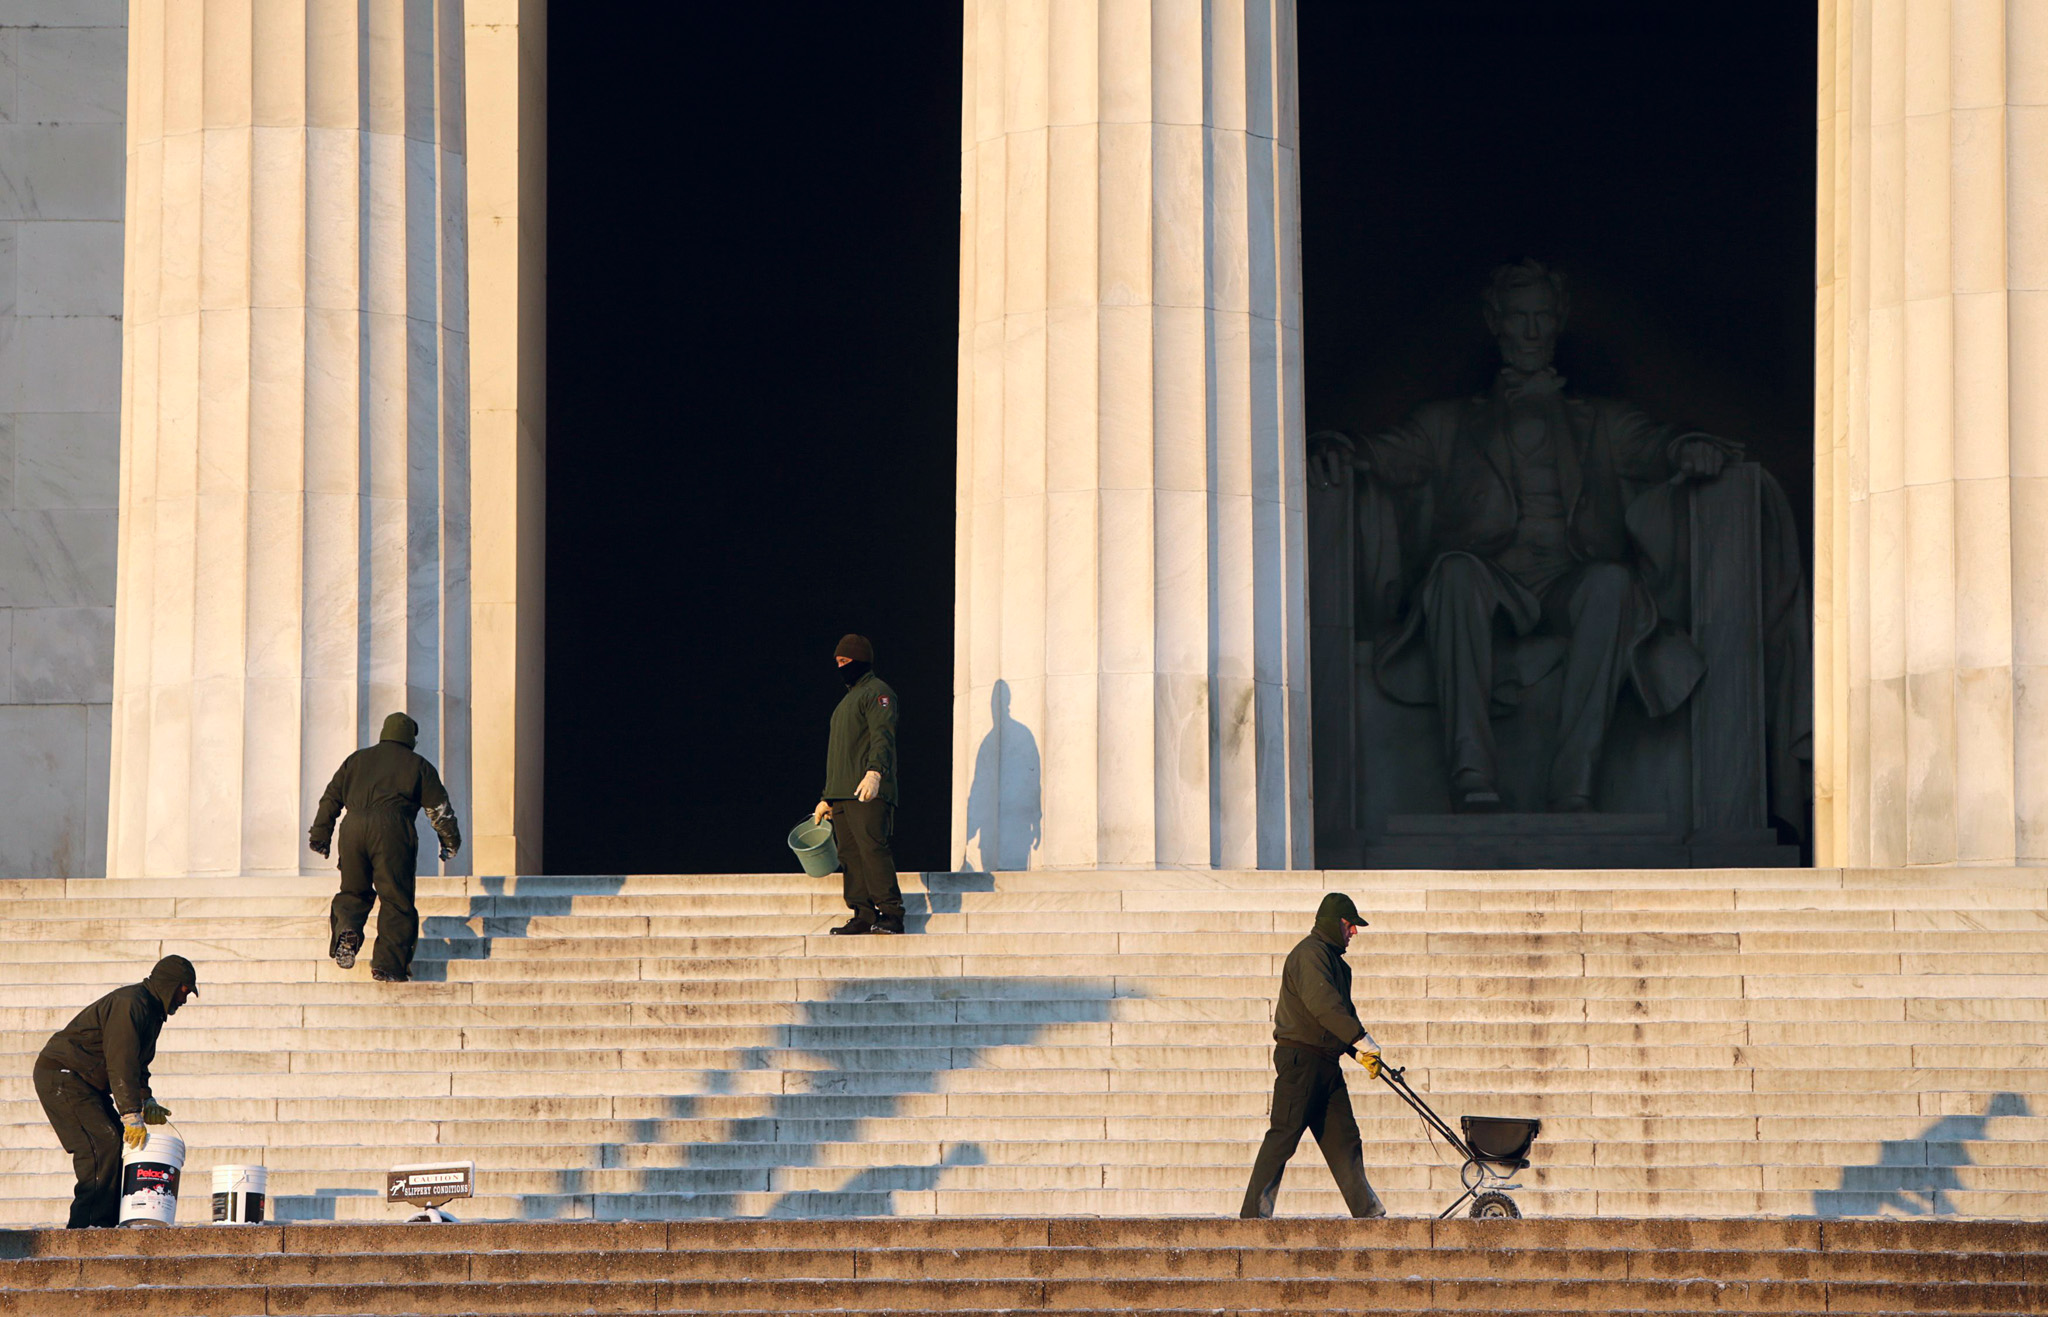 National Park Service workers spread salt on icy steps of the Lincoln Memorial in Washington...National Park Service workers spread salt on the icy steps of the Lincoln Memorial in Washington January 3, 2014. A heavy snowstorm and dangerously cold conditions gripped the northeastern United States on Friday, delaying flights, paralyzing road travel and closing schools and government offices across the region.  REUTERS/Gary Cameron